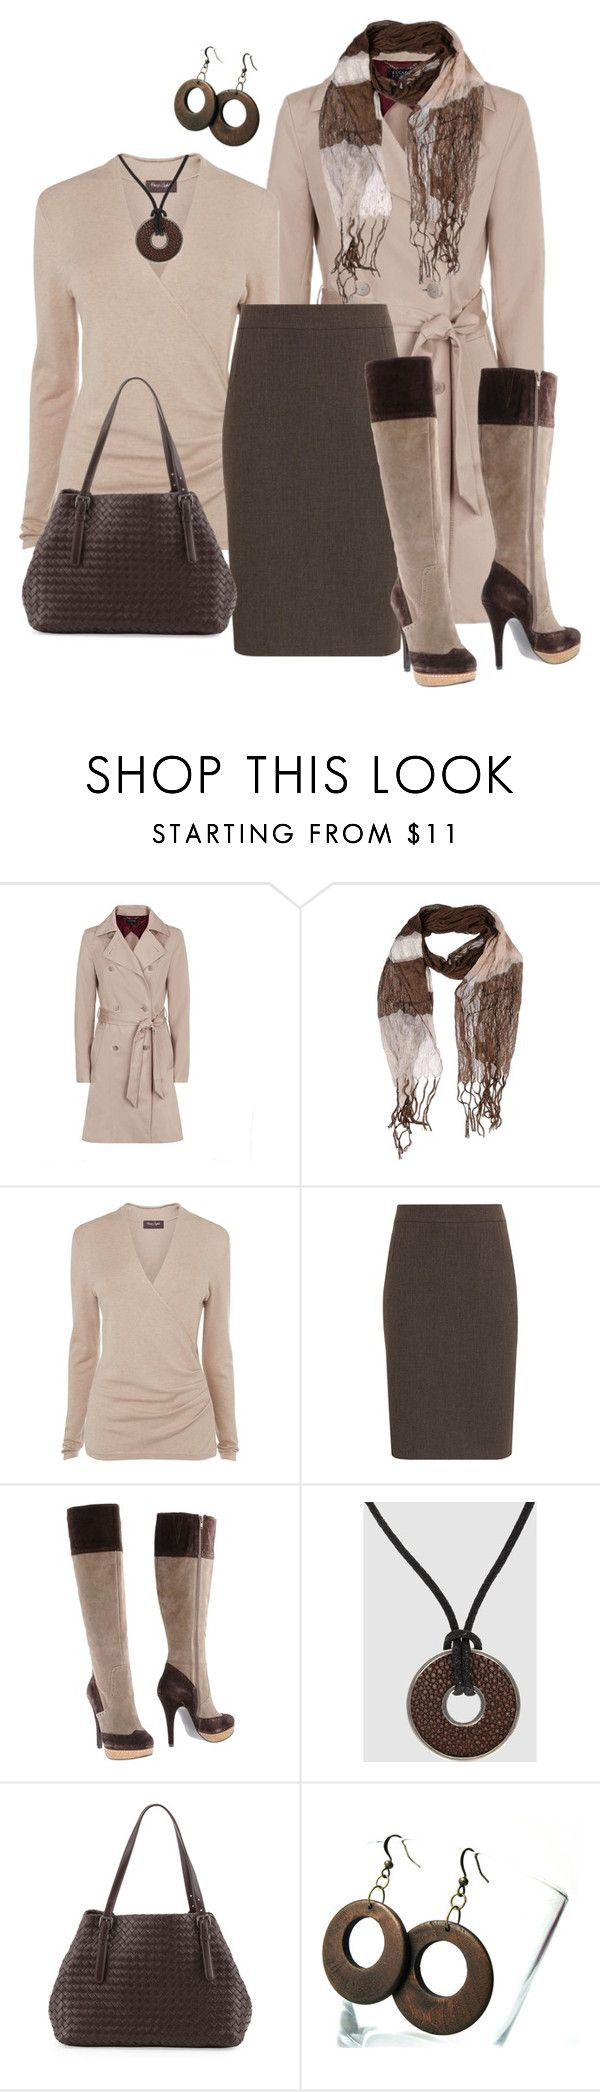 """""""Love those boots"""" by striplingmom-1 ❤ liked on Polyvore featuring Escada Sport, New York Industrie, Phase Eight, Planet, Tosca Blu, VIVO and Bottega Veneta"""